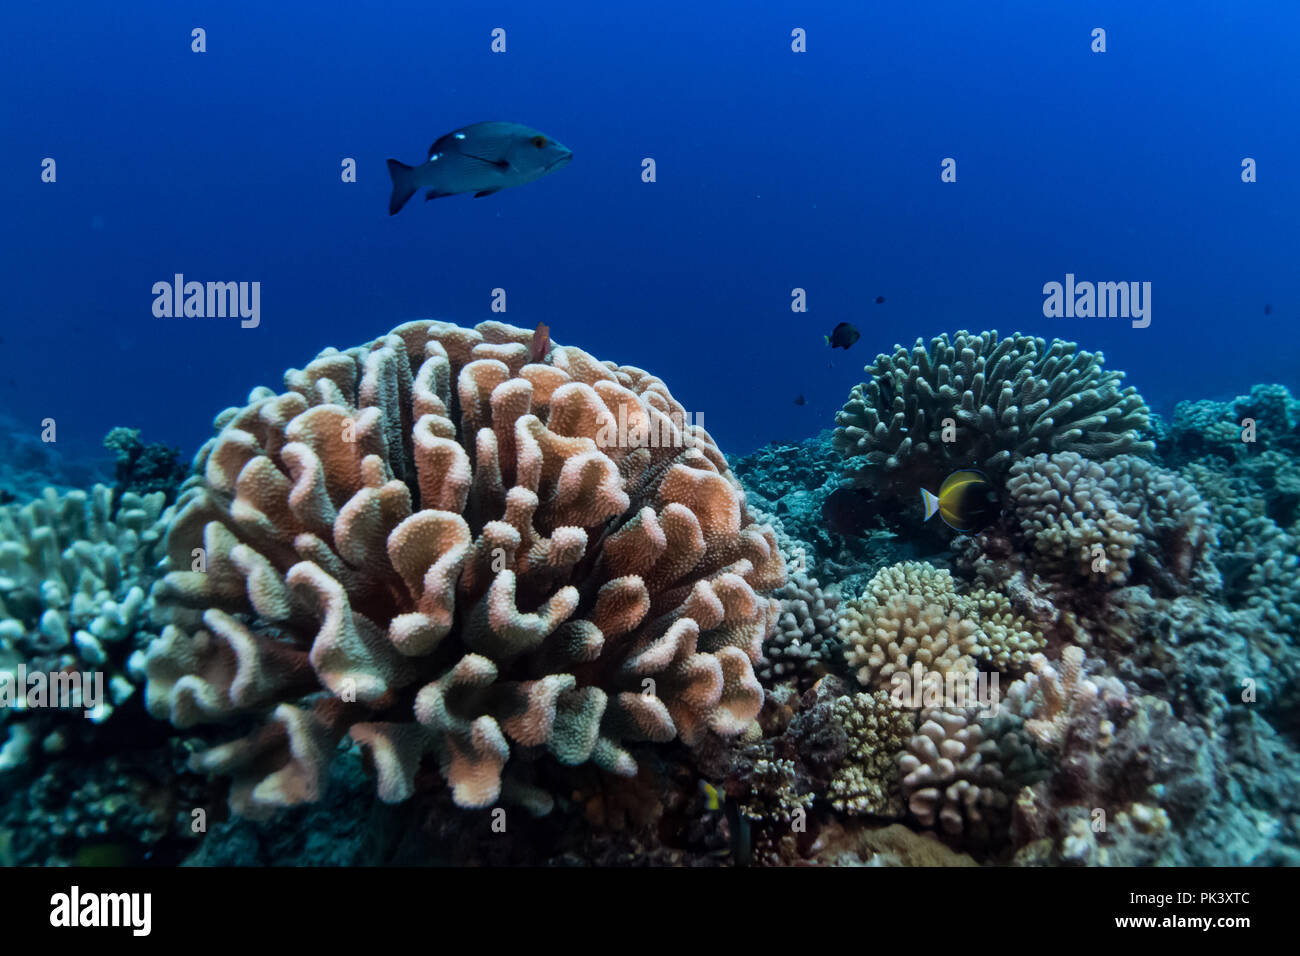 SCUBA diving in the crystal clear water of Makatea island in French Polynesia with beautiful healthy coral and large fish such as this snapper Stock Photo